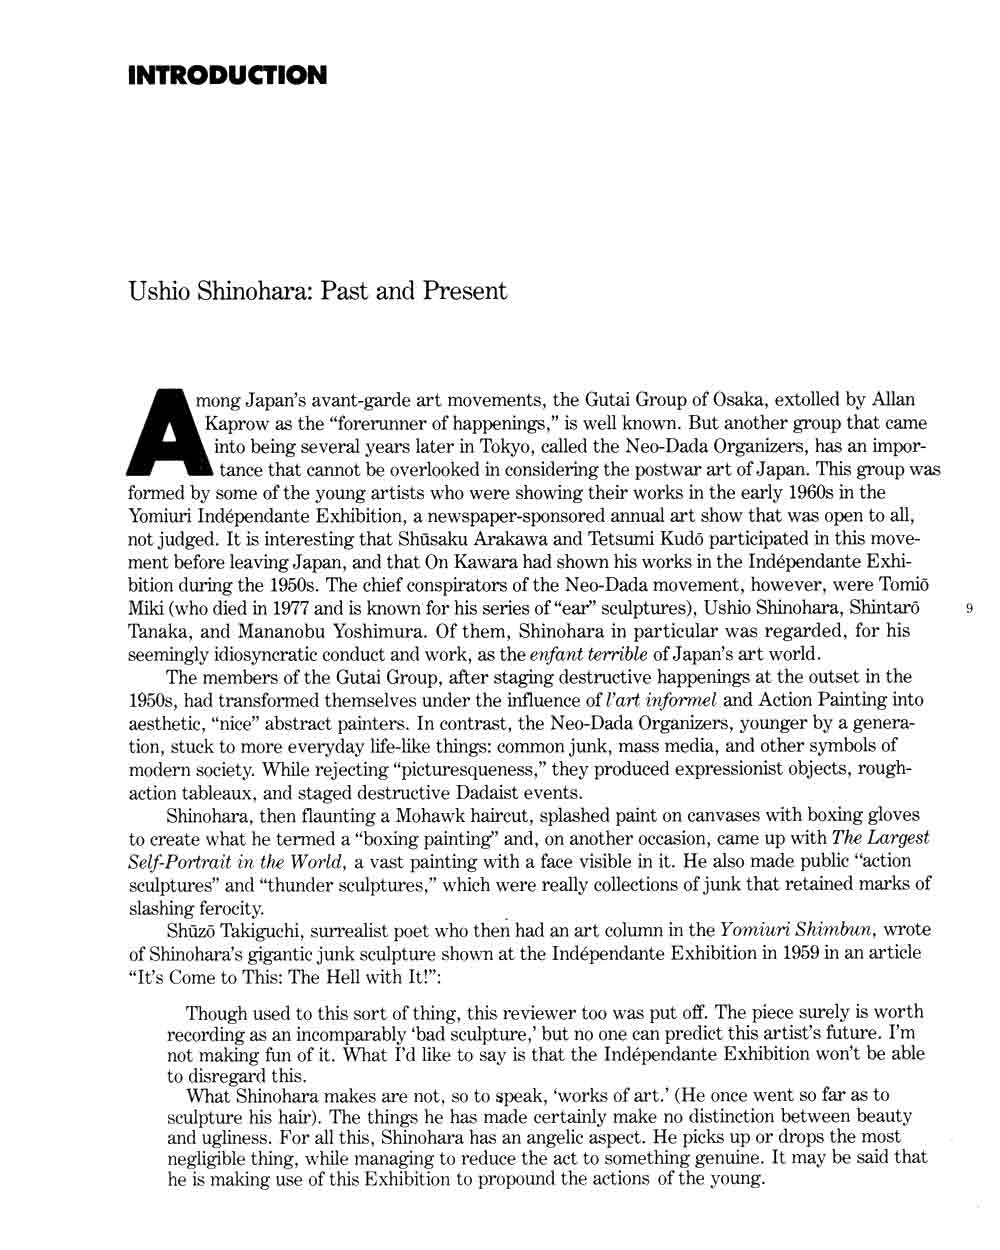 004 Cite An Essay Example Ushio Shinohara Past And Present Pg 1 Striking How To From A Textbook In Mla Format Book Apa Style Full